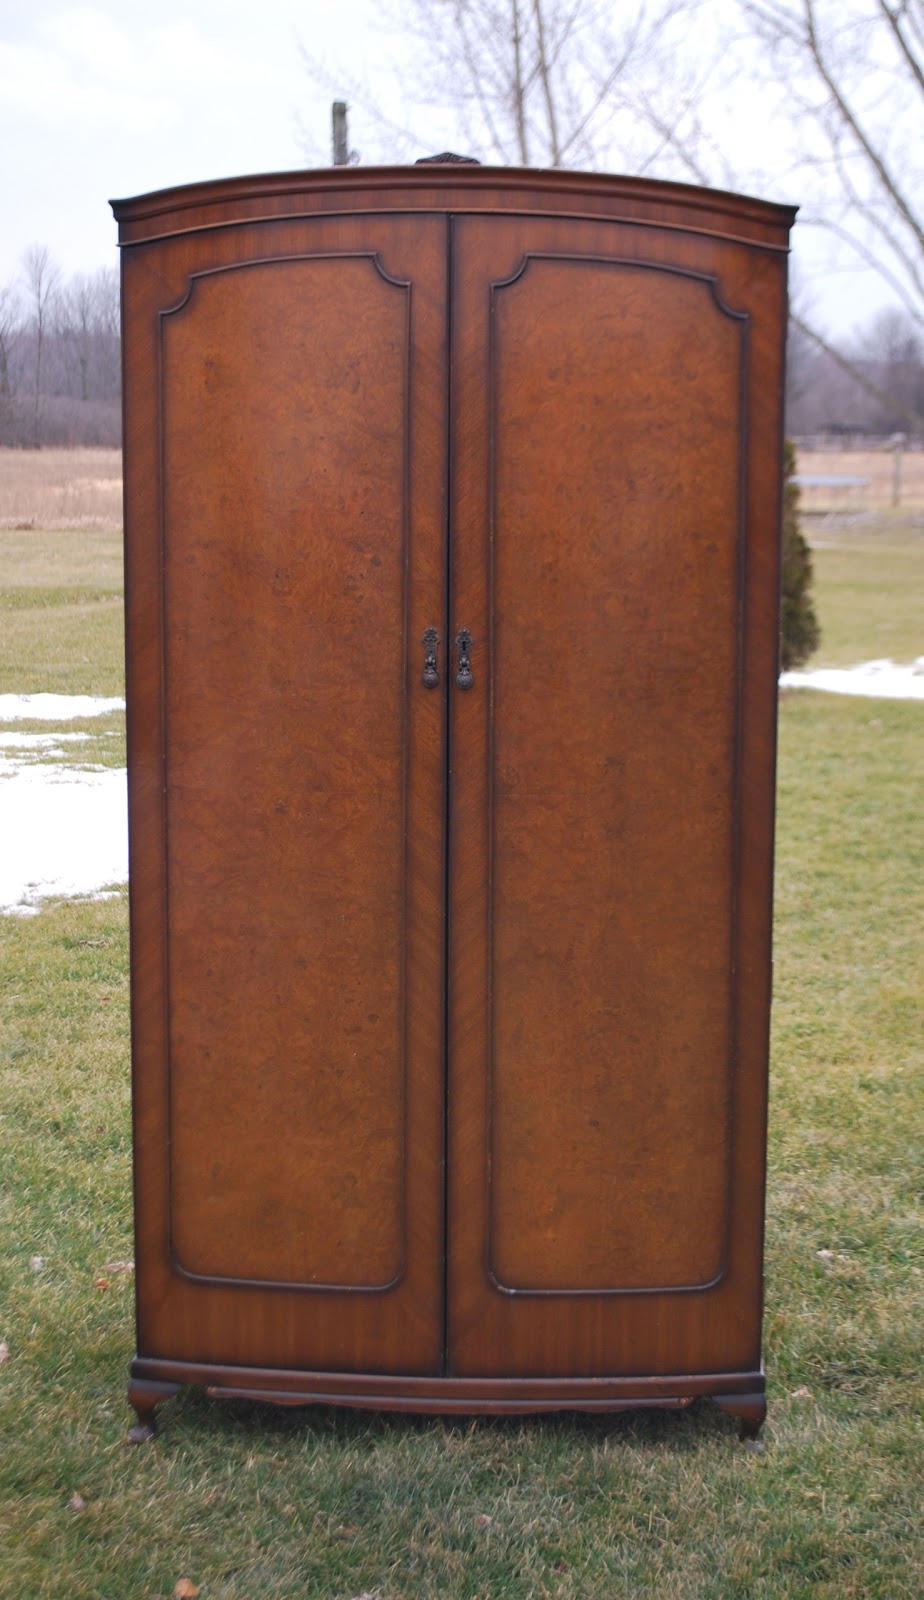 Tribute 20th Decor Scottish Burled Walnut Gents Wardrobe